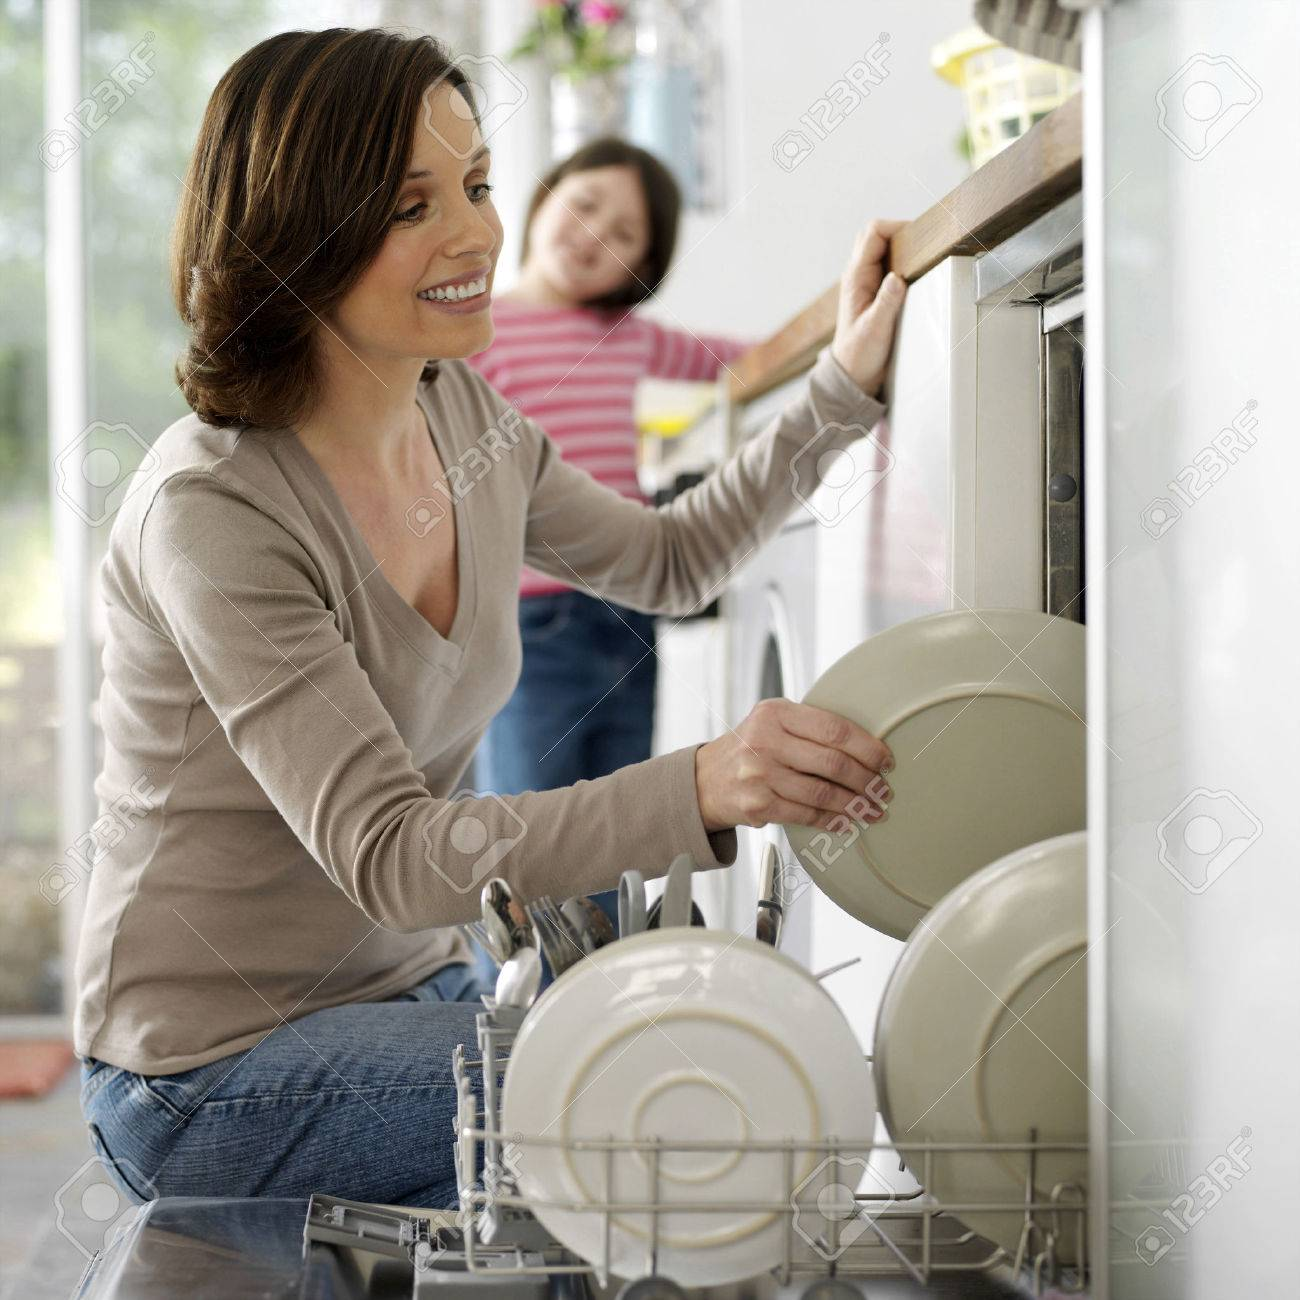 Girl watching her mother keeping the dishes in the dishwasher Stock Photo - 26270641